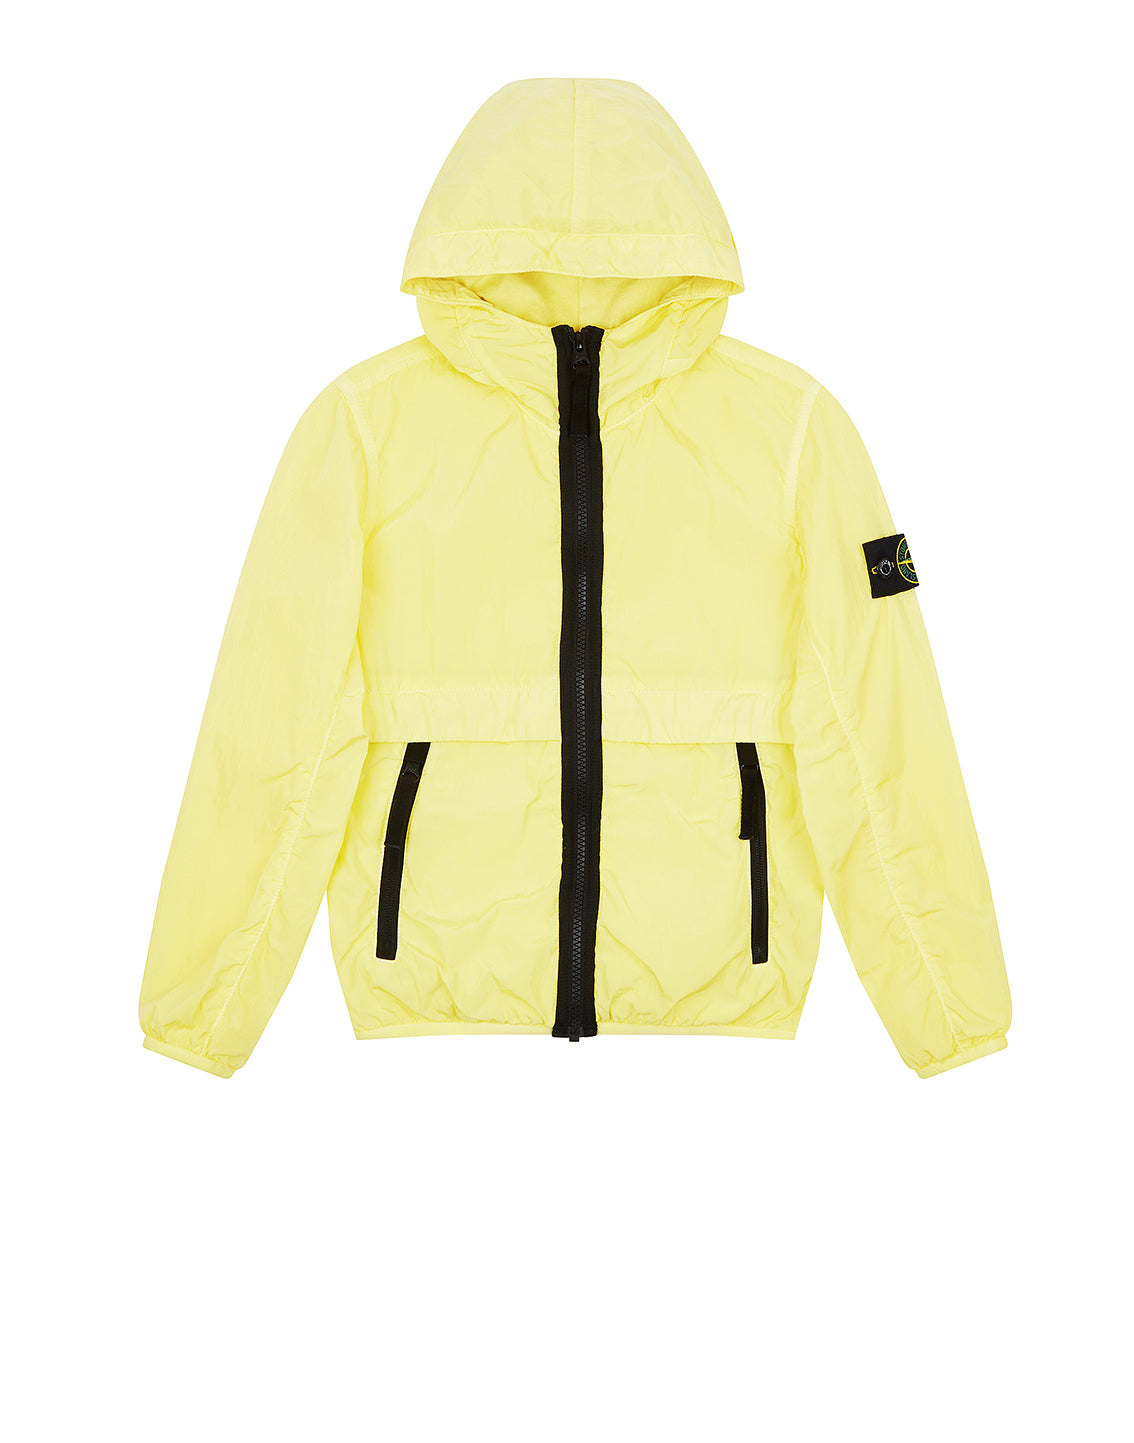 40132 Jacket in Lemon